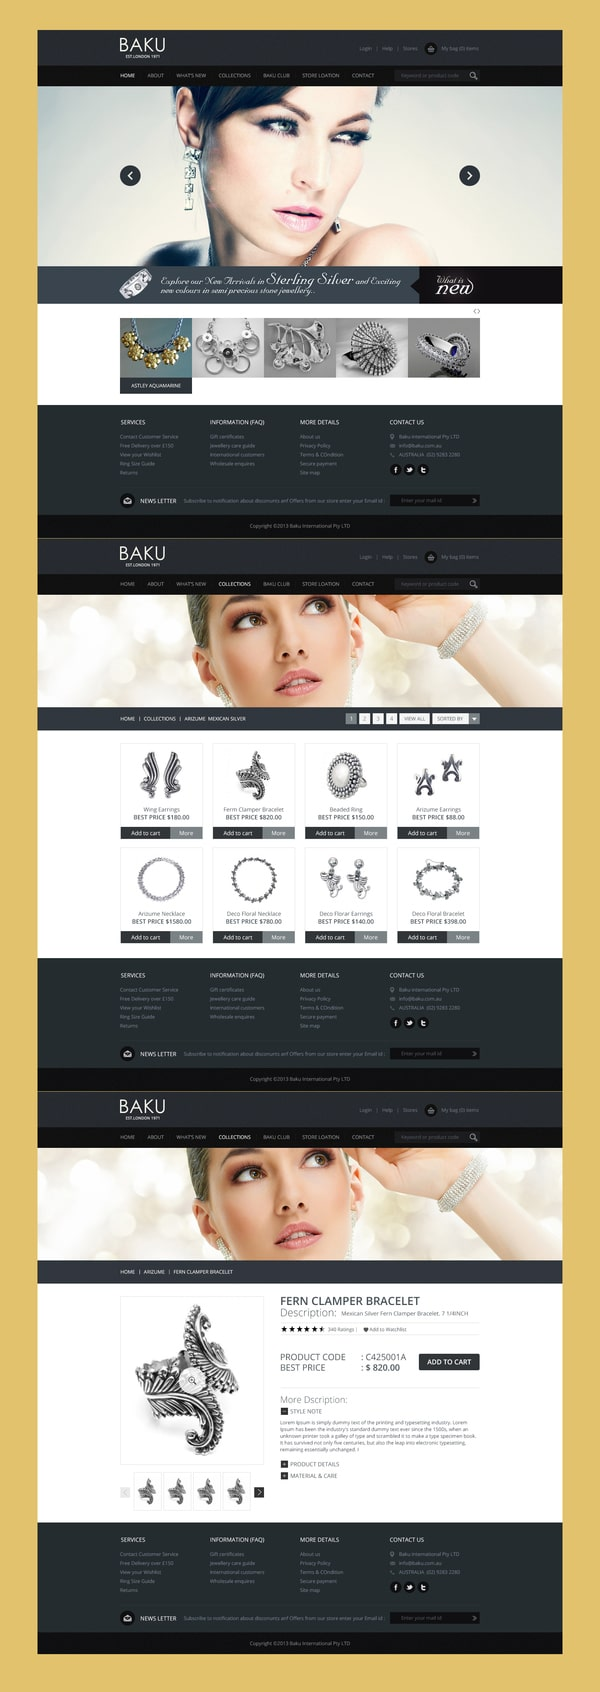 Online Store Template PSD